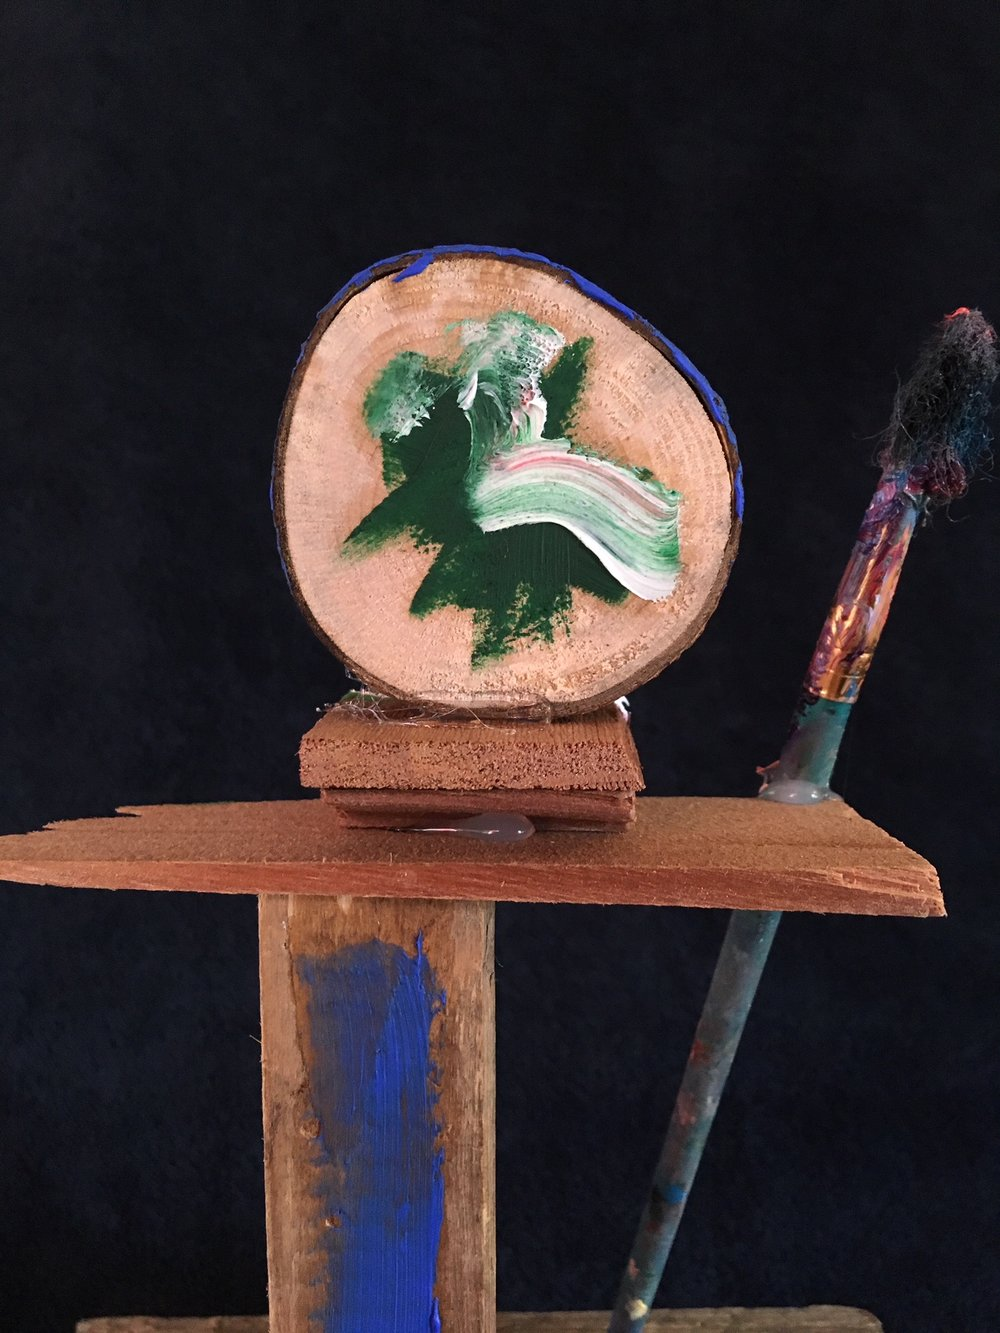 oil paint, paintbrush and wood sculpture on wooden base